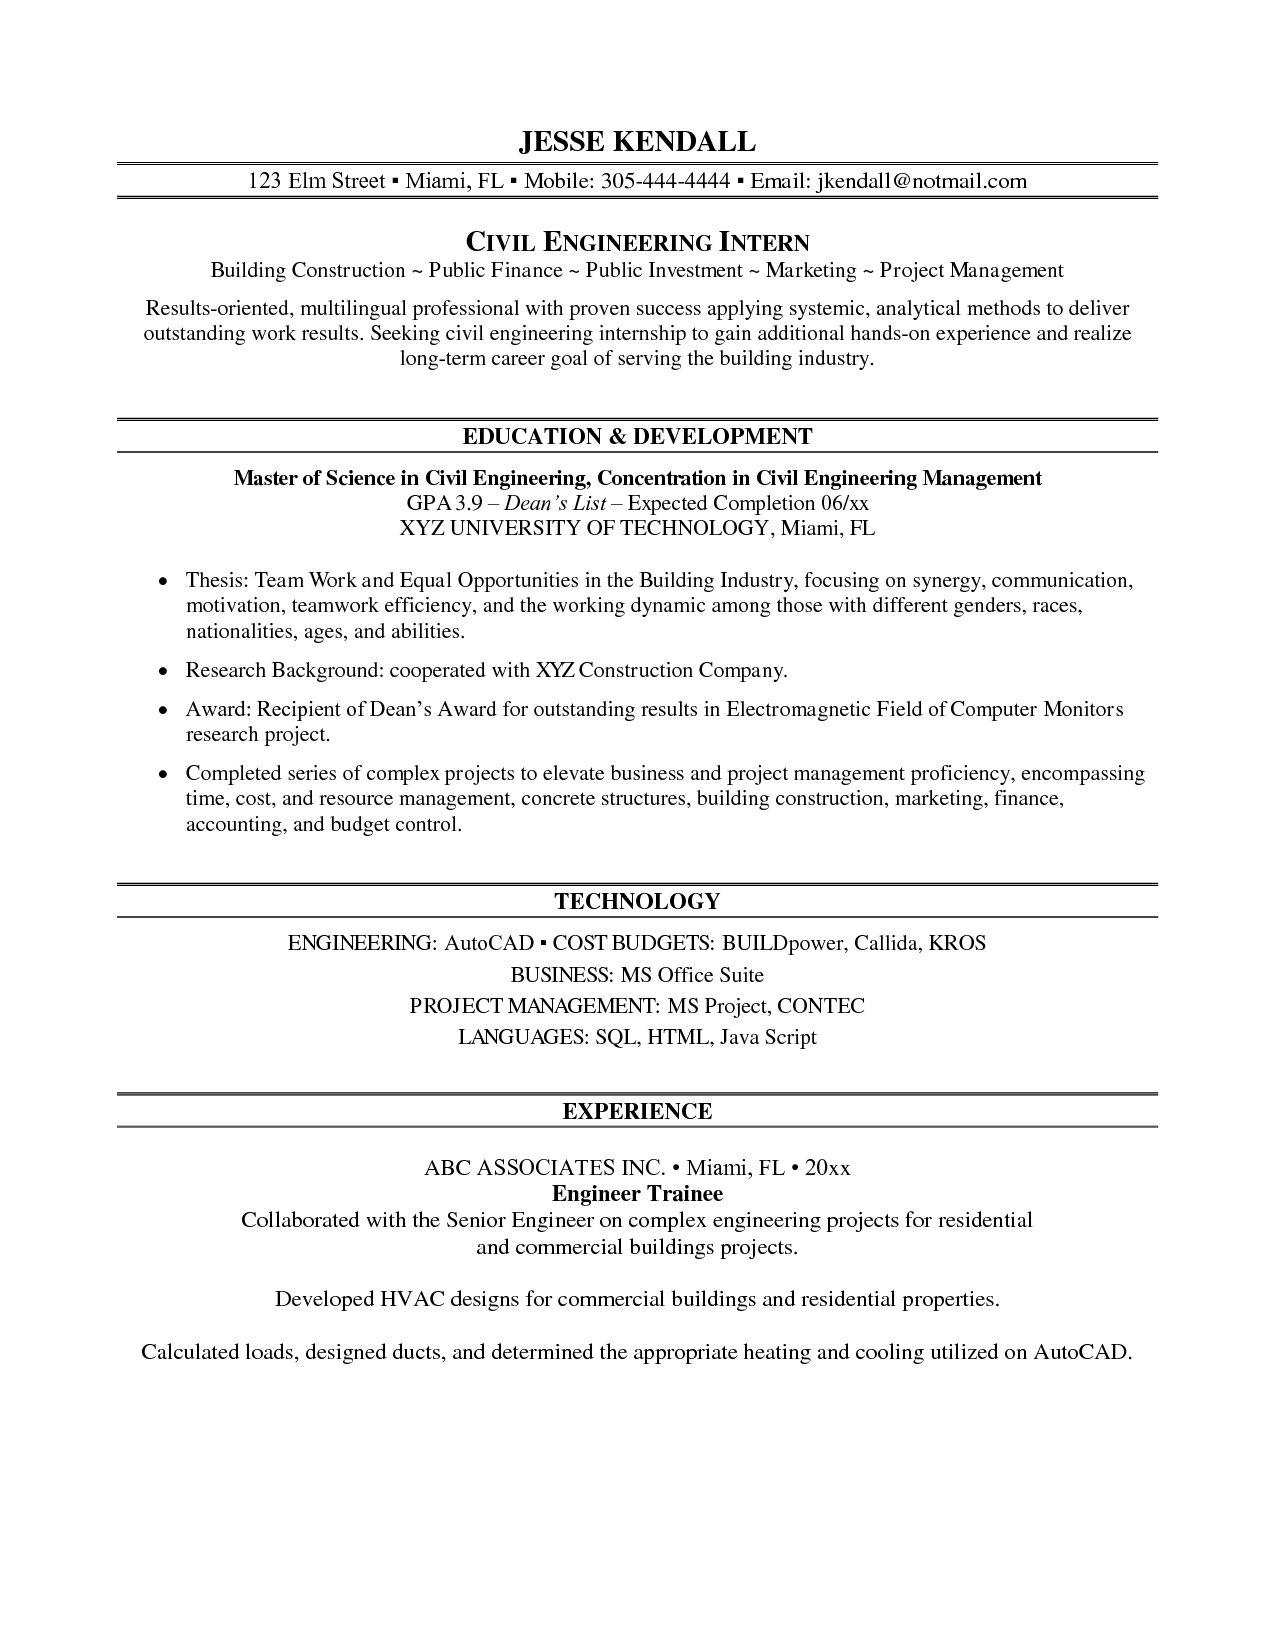 Internship Resume Template Internship On Resume Best Template Collection  Httpwww